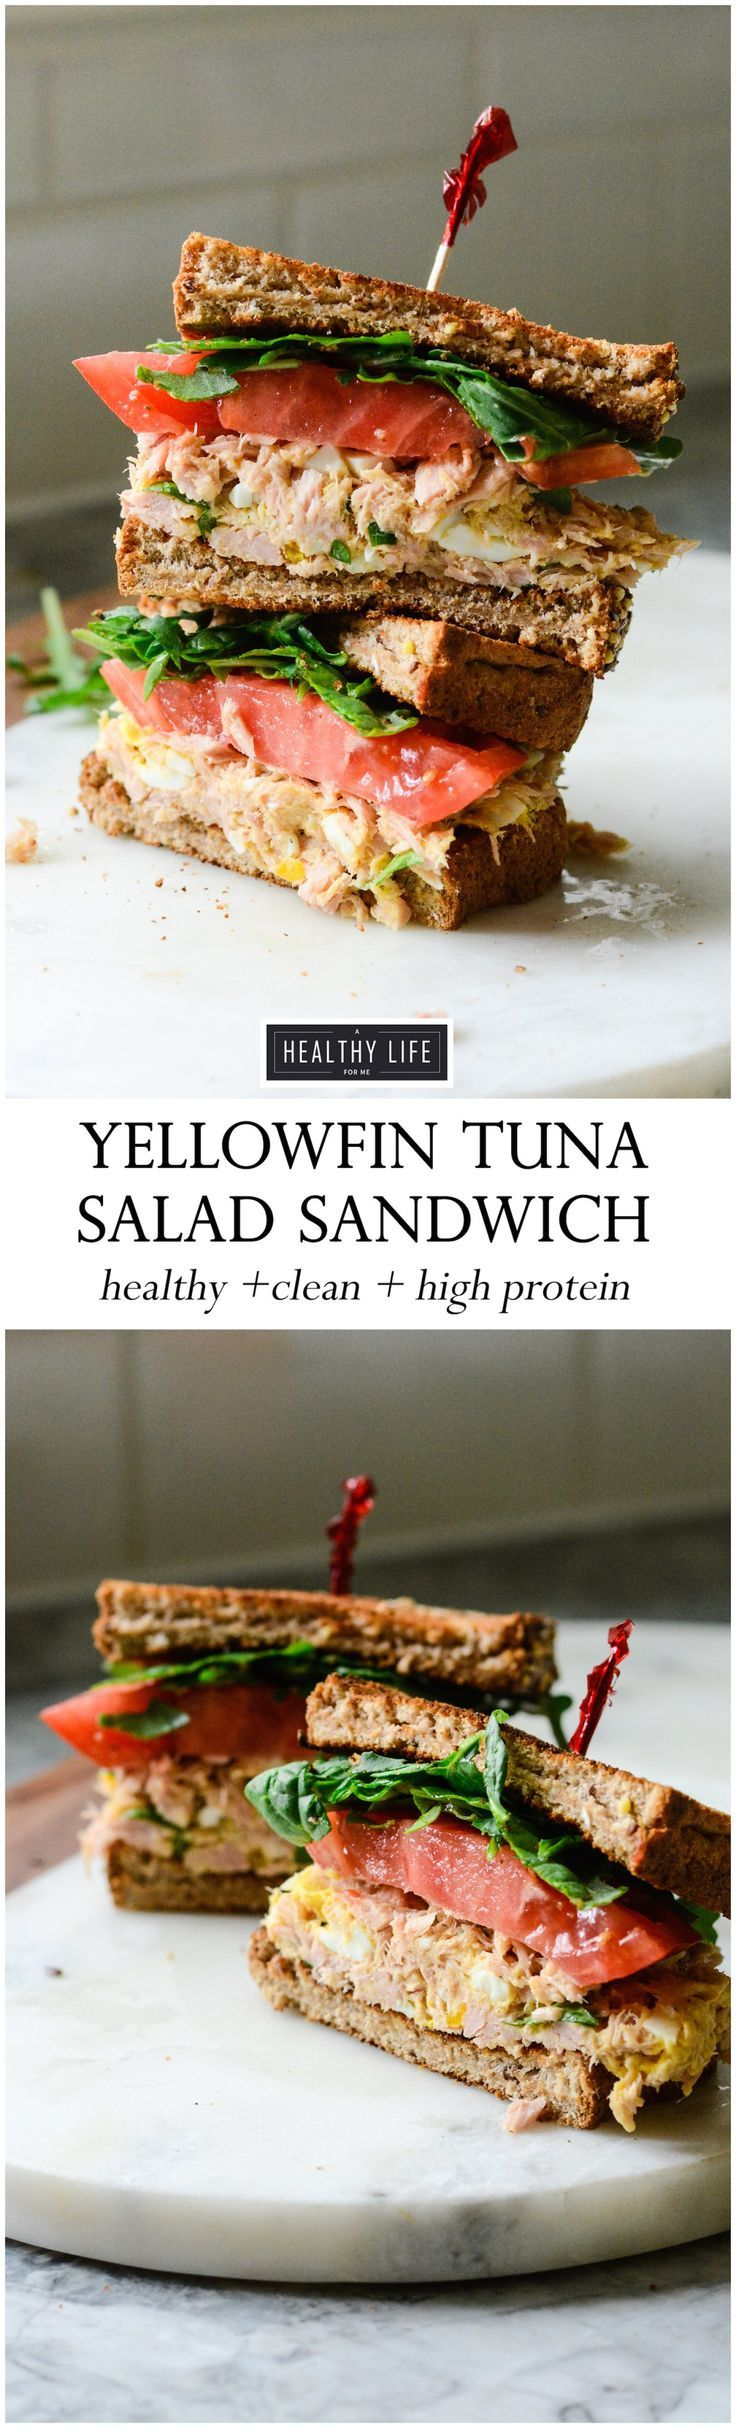 This Yellowfin Tuna Salad Sandwich made with high quality tuna, egg, dijon, a bit of spice all on top of a perfectly toasted piece of bread may be the best tuna salad sandwich ever.  High protein, low calorie makes this is the perfect lunch or light dinner recipe. - A Healthy Life For Me